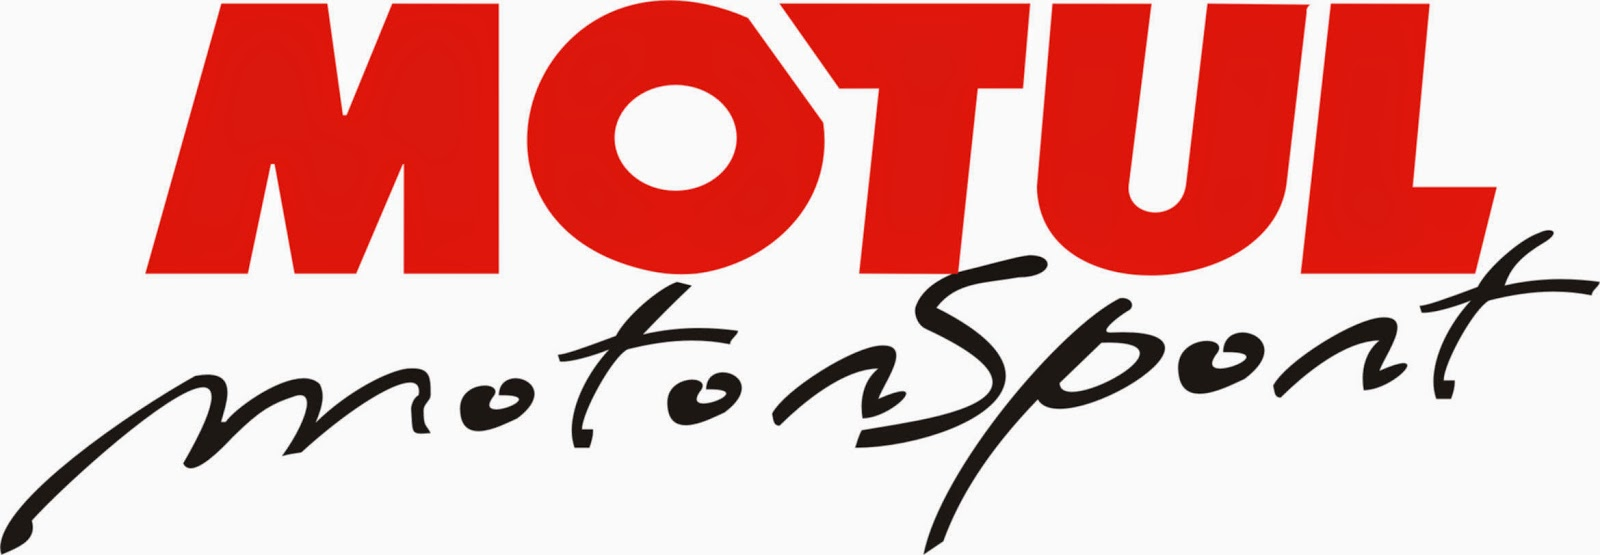 https://www.motul.com/pl/pl/products/recommendation